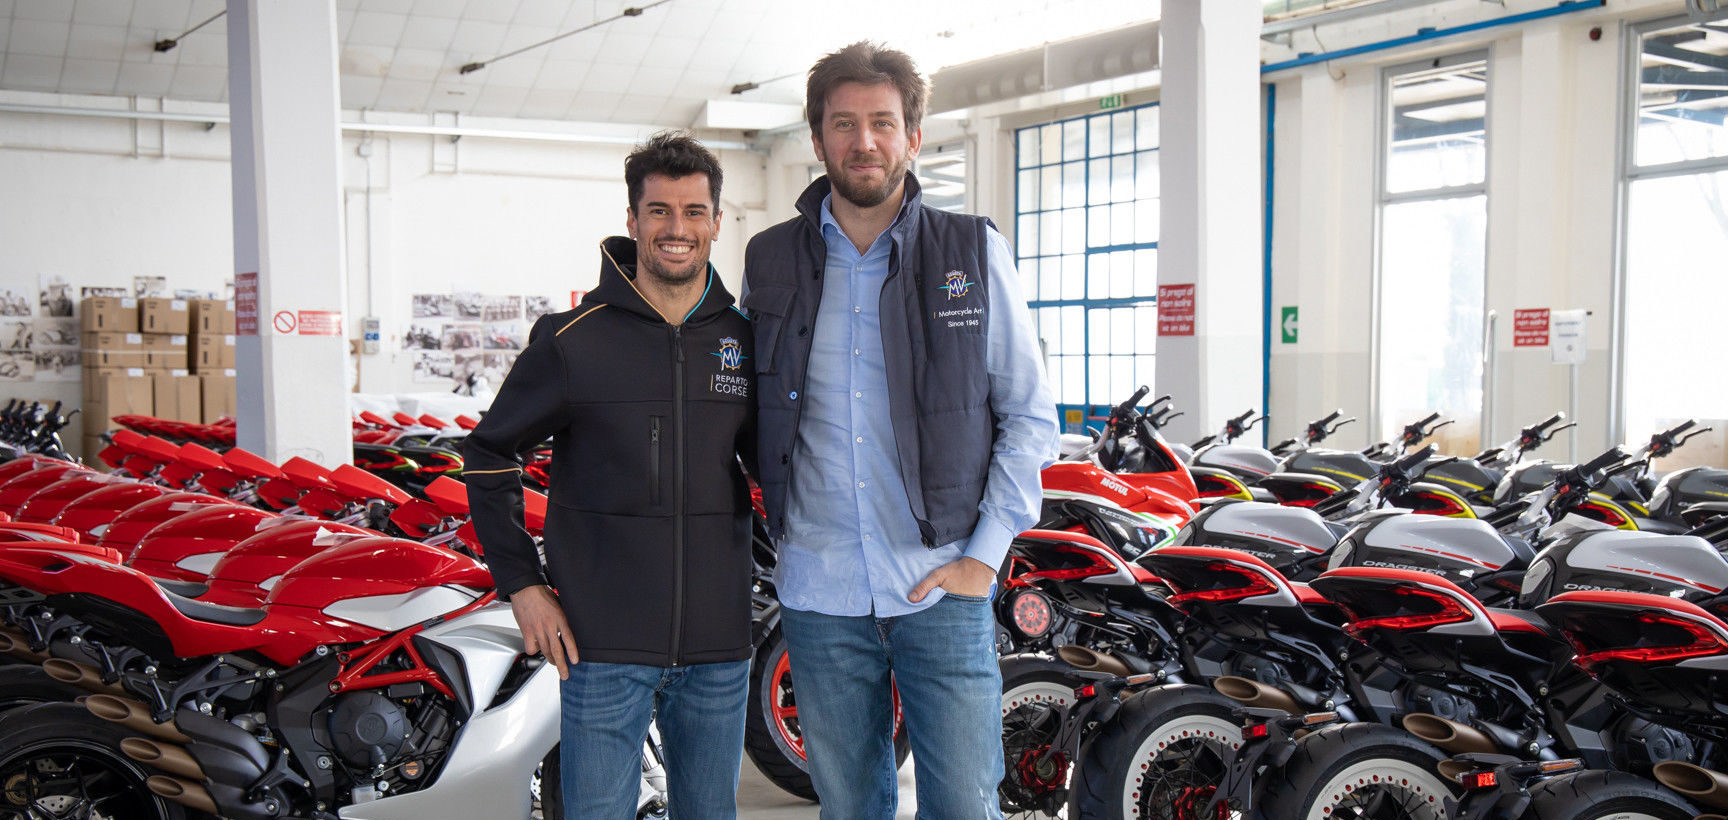 Simone Corsi (left) and MV Agusta Chairman and CEO Timur Sardarov (right) at MV Agusta's factory in Italy. Photo courtesy of MV Agusta.